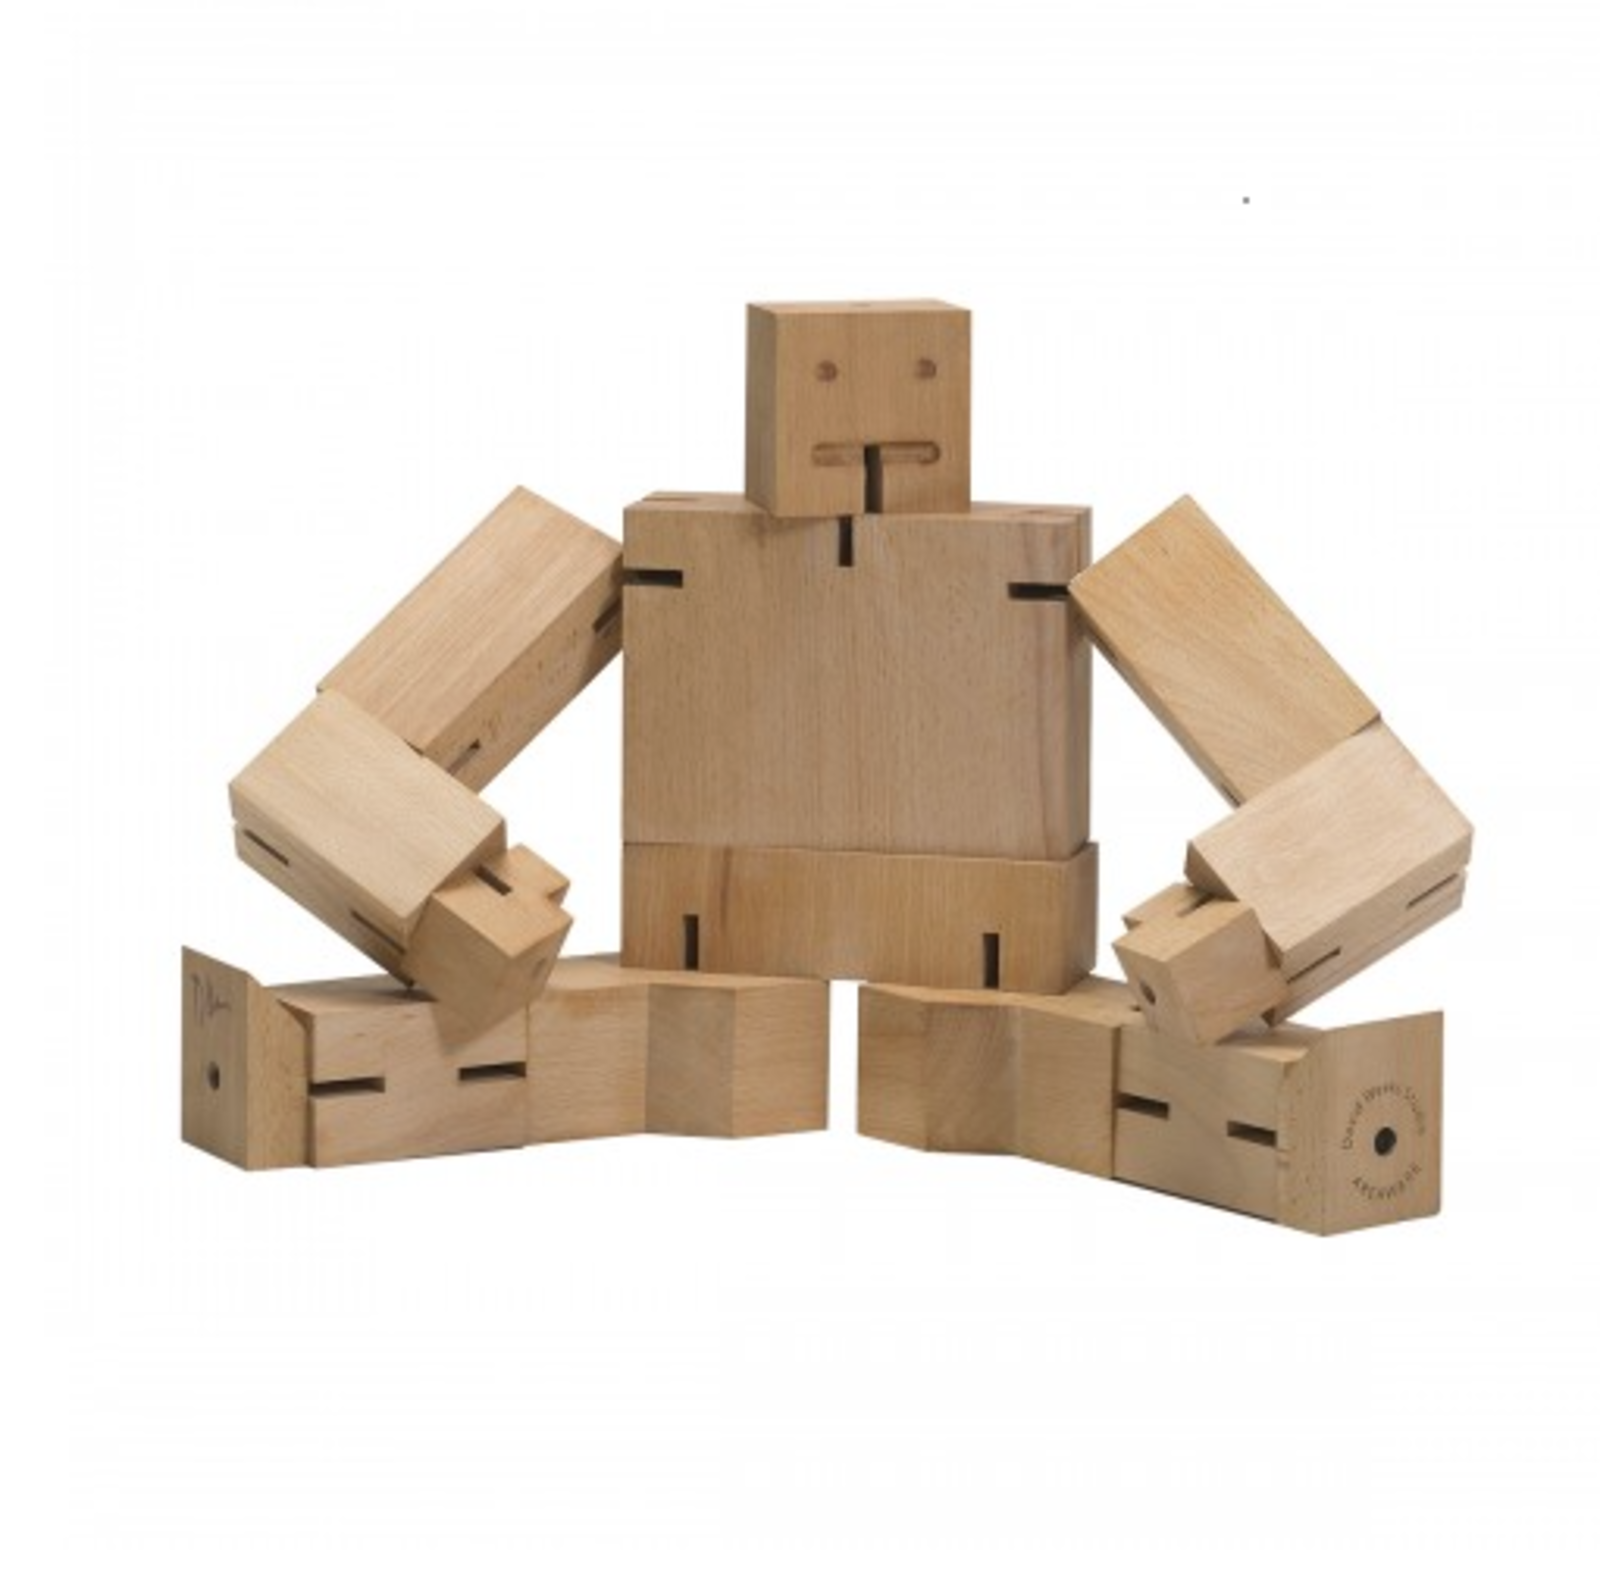 Designer David Weeks reimagines the toy robot without using of plastic or battery power. Cubebot's durable hardwood frame was inspired by Japanese Shinto Kumi-K puzzles, and can endure generations of play.  Absolutely Adorable Toys for Kids by Luke Hopping